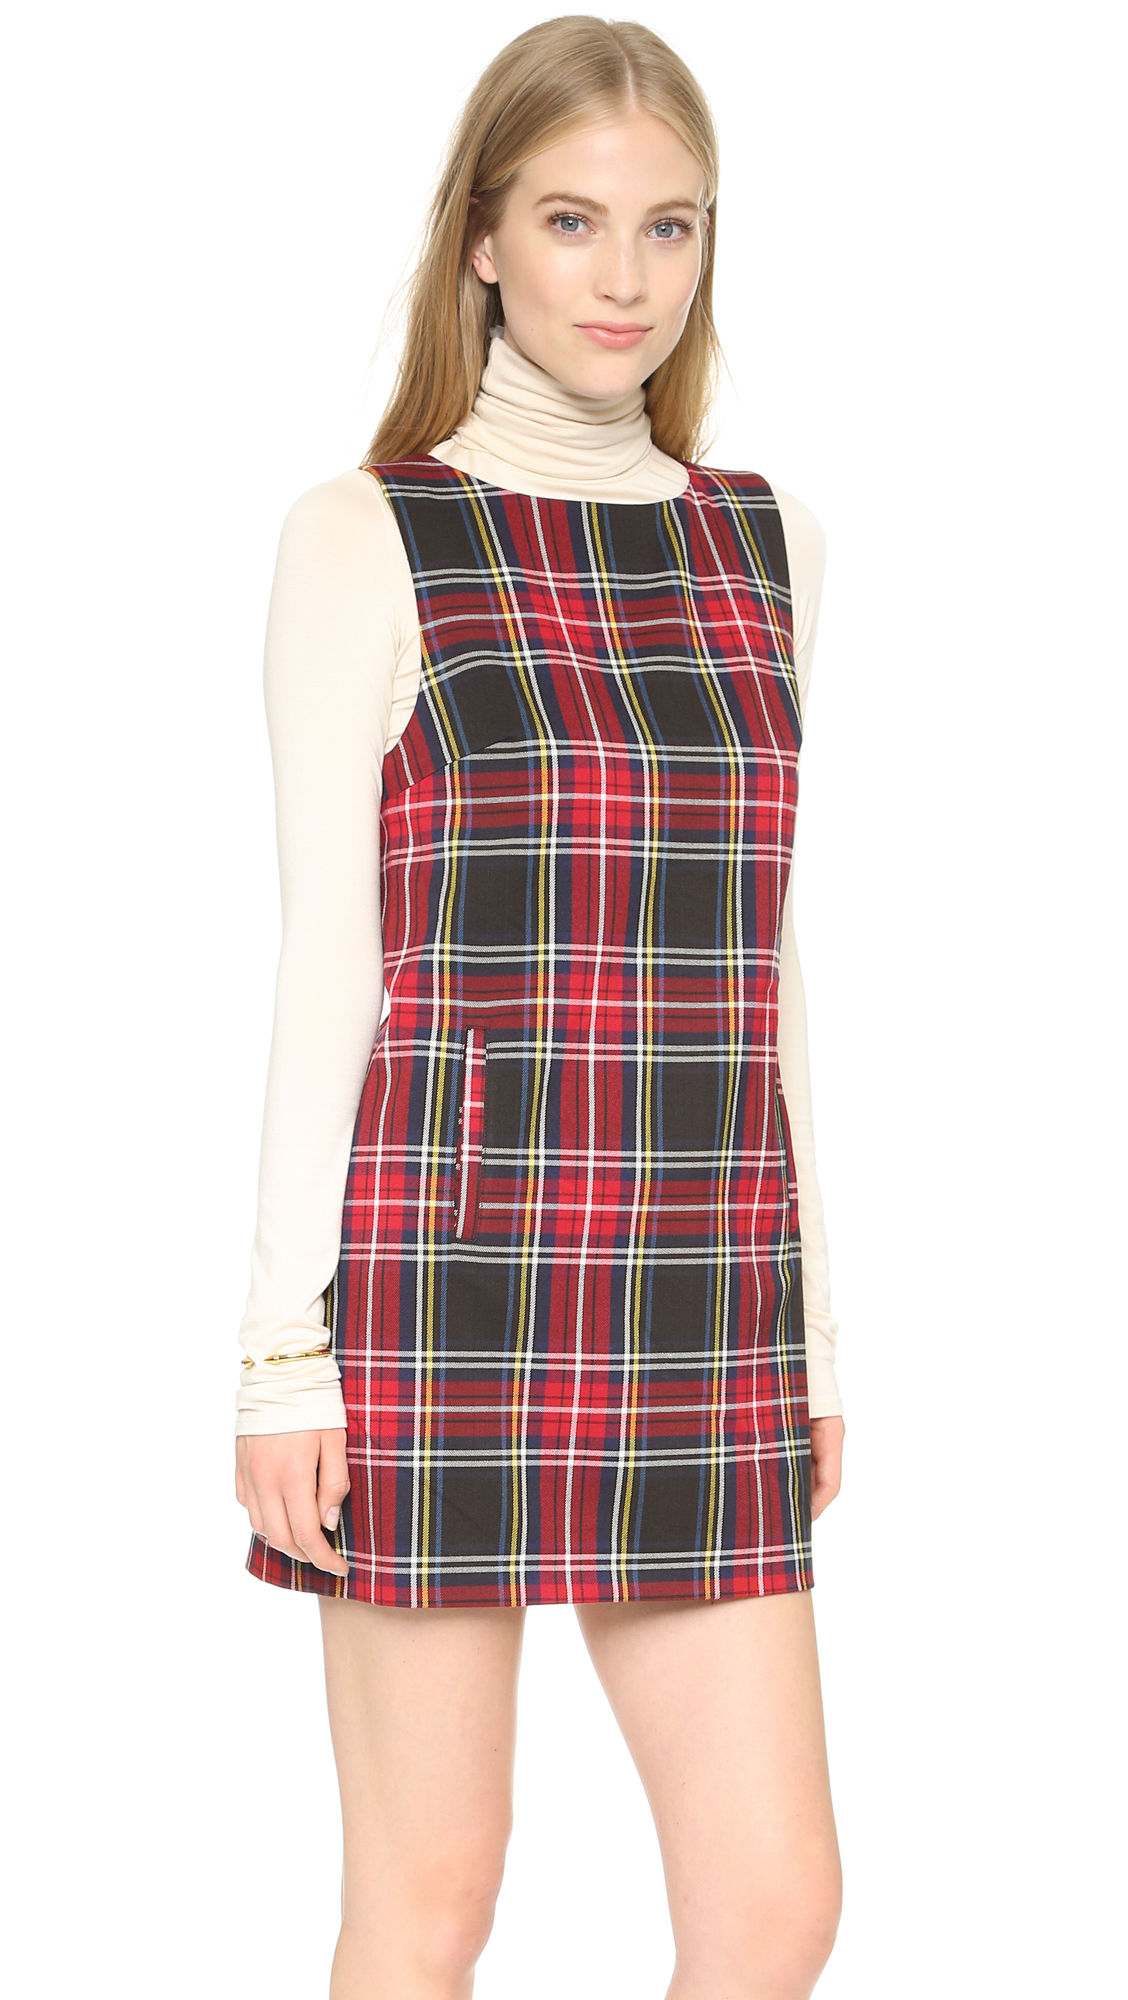 Dylan by True Grit Women's Puckered Plaid Sleeveless Shirt Dress, Black Plaid, X-Small This dylan, by true grit puckered plaid sleeveless shirt dress is made from percent soft cotton. It has a built-in slip, two pockets and is made with window pane pattern in the fabric.